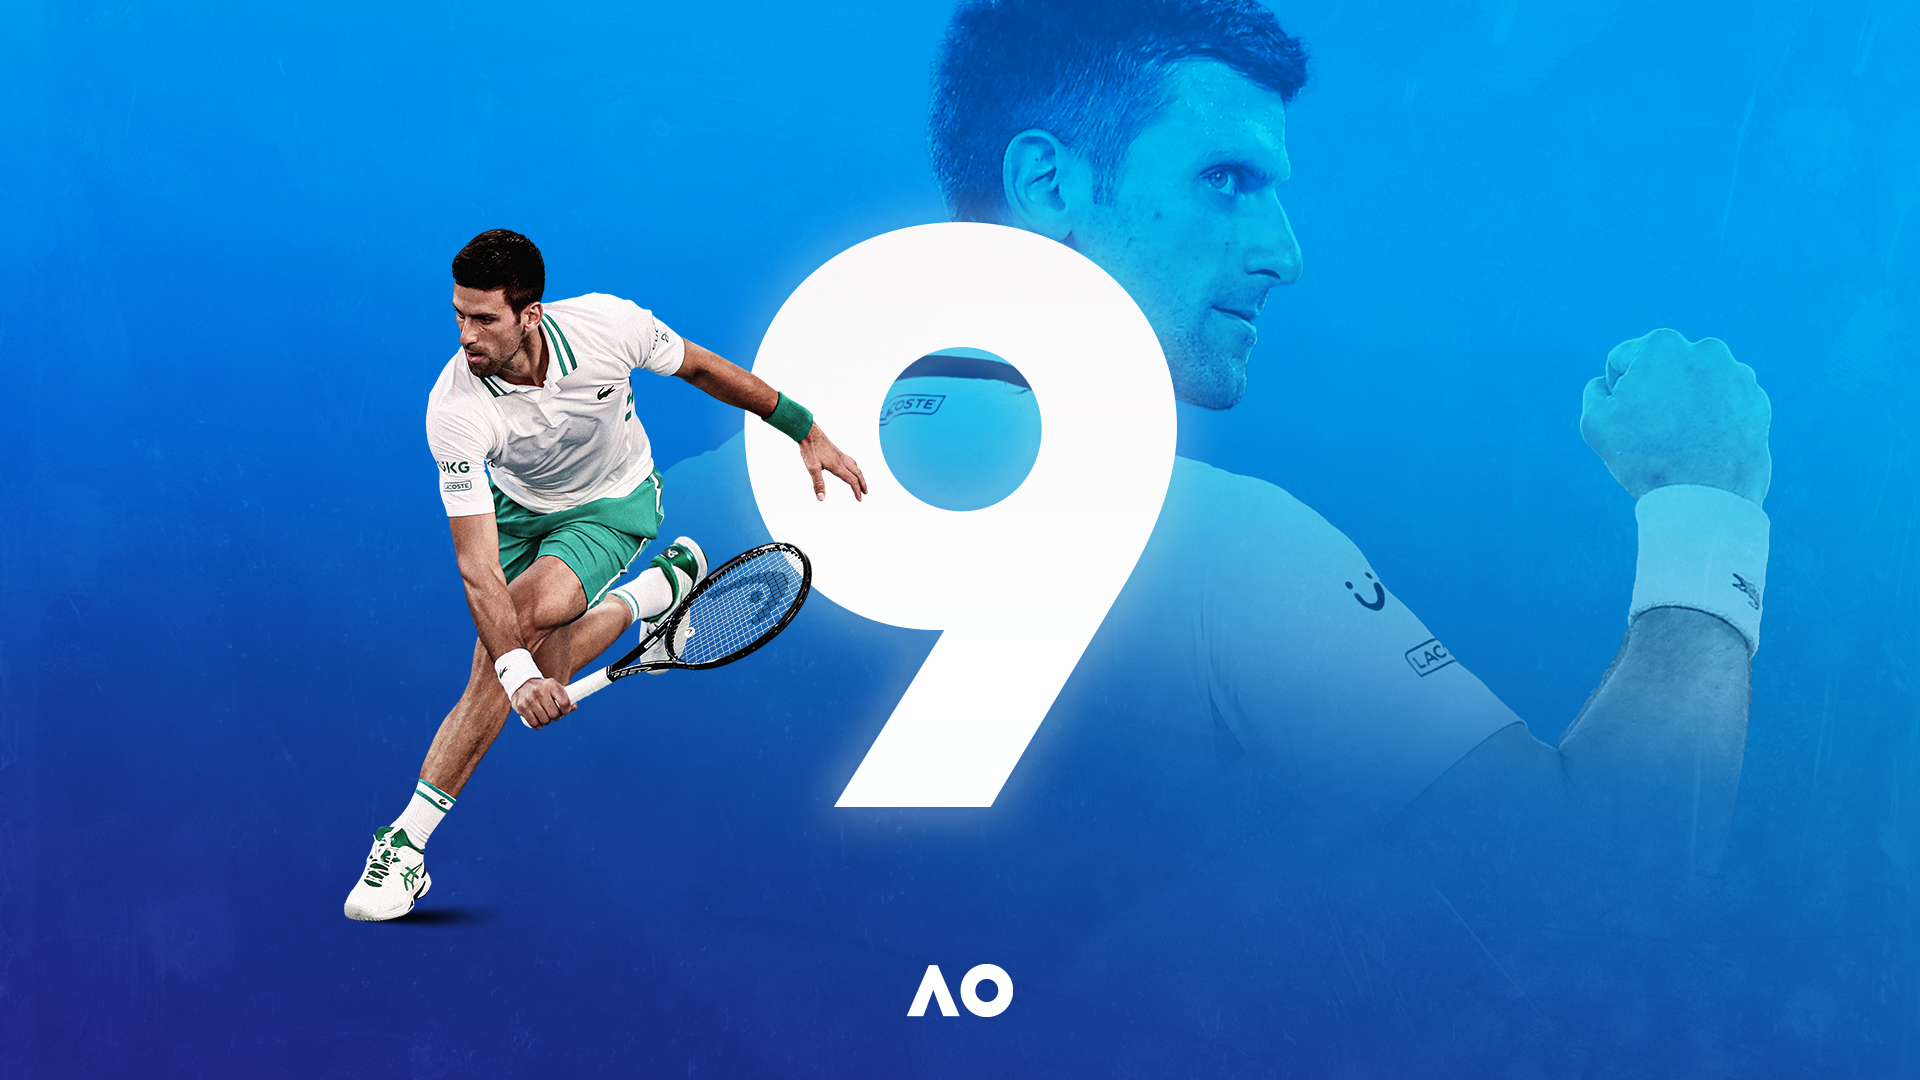 Graphic of Novak Djokovic winning his 9th Australian Open title.